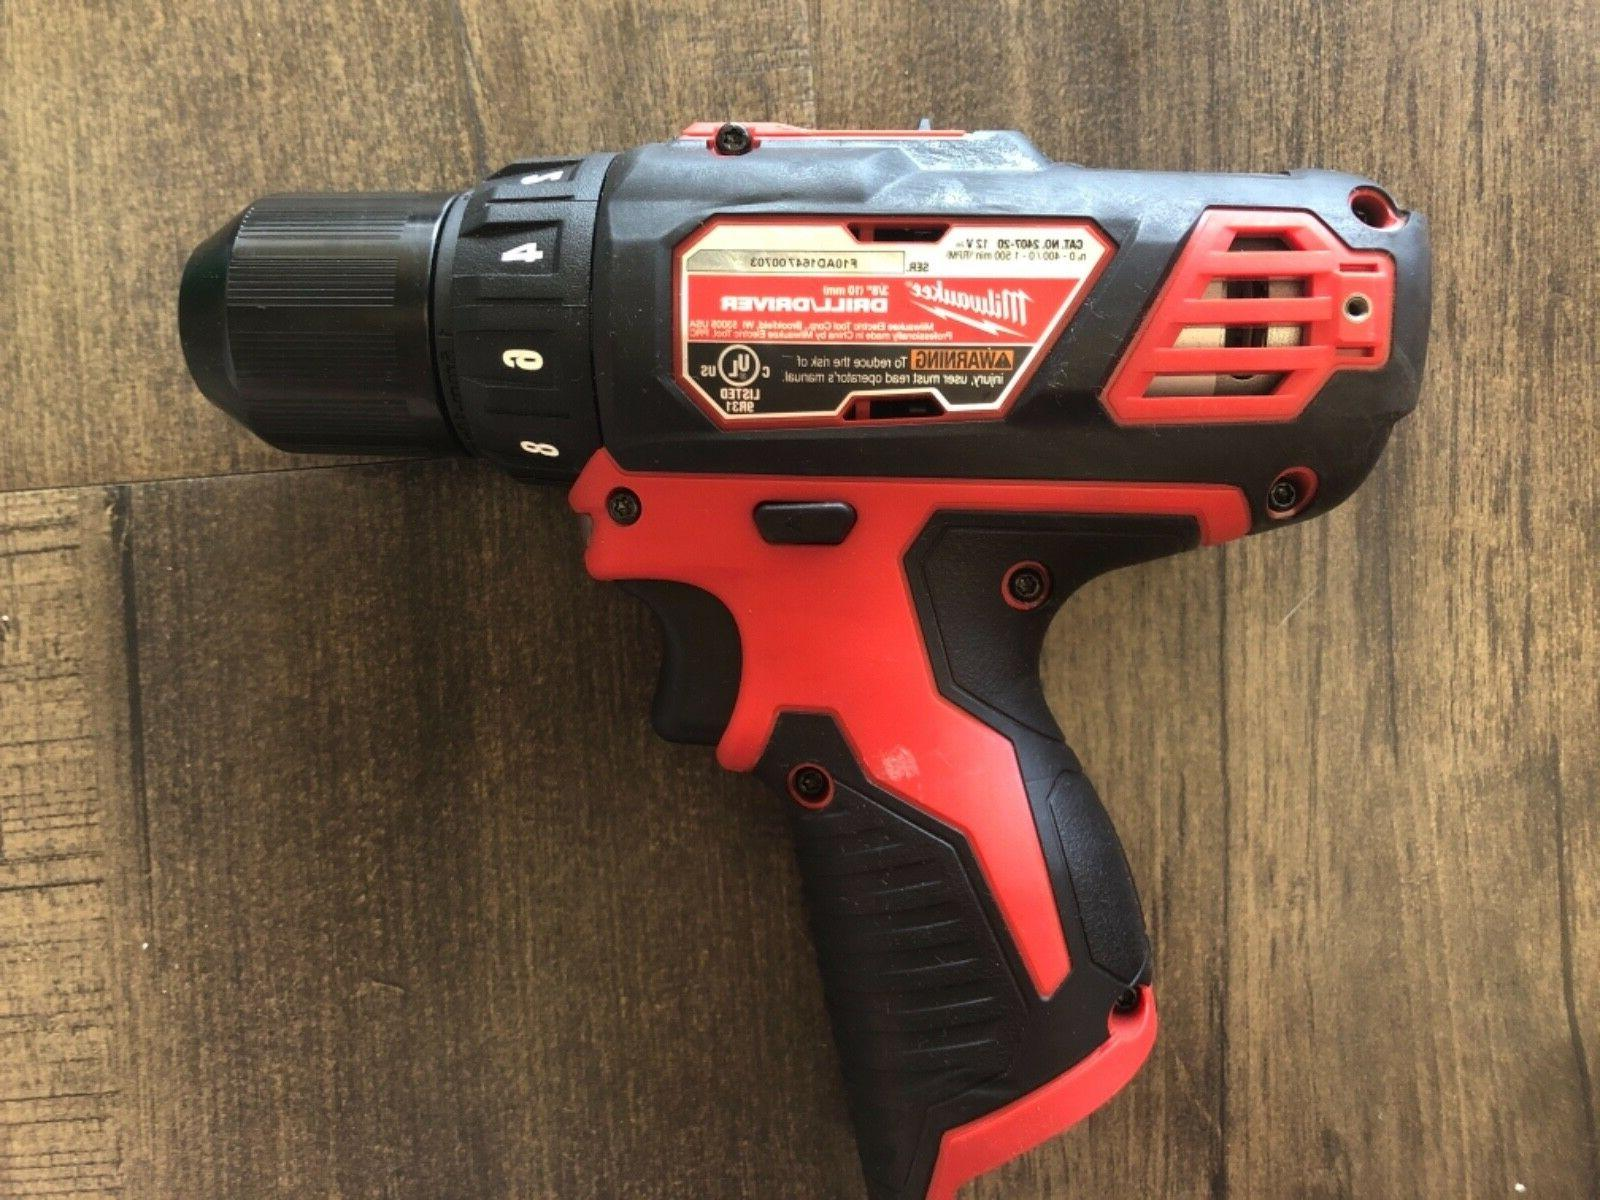 Milwaukee 2407-20 12V Cordless Driver tool only